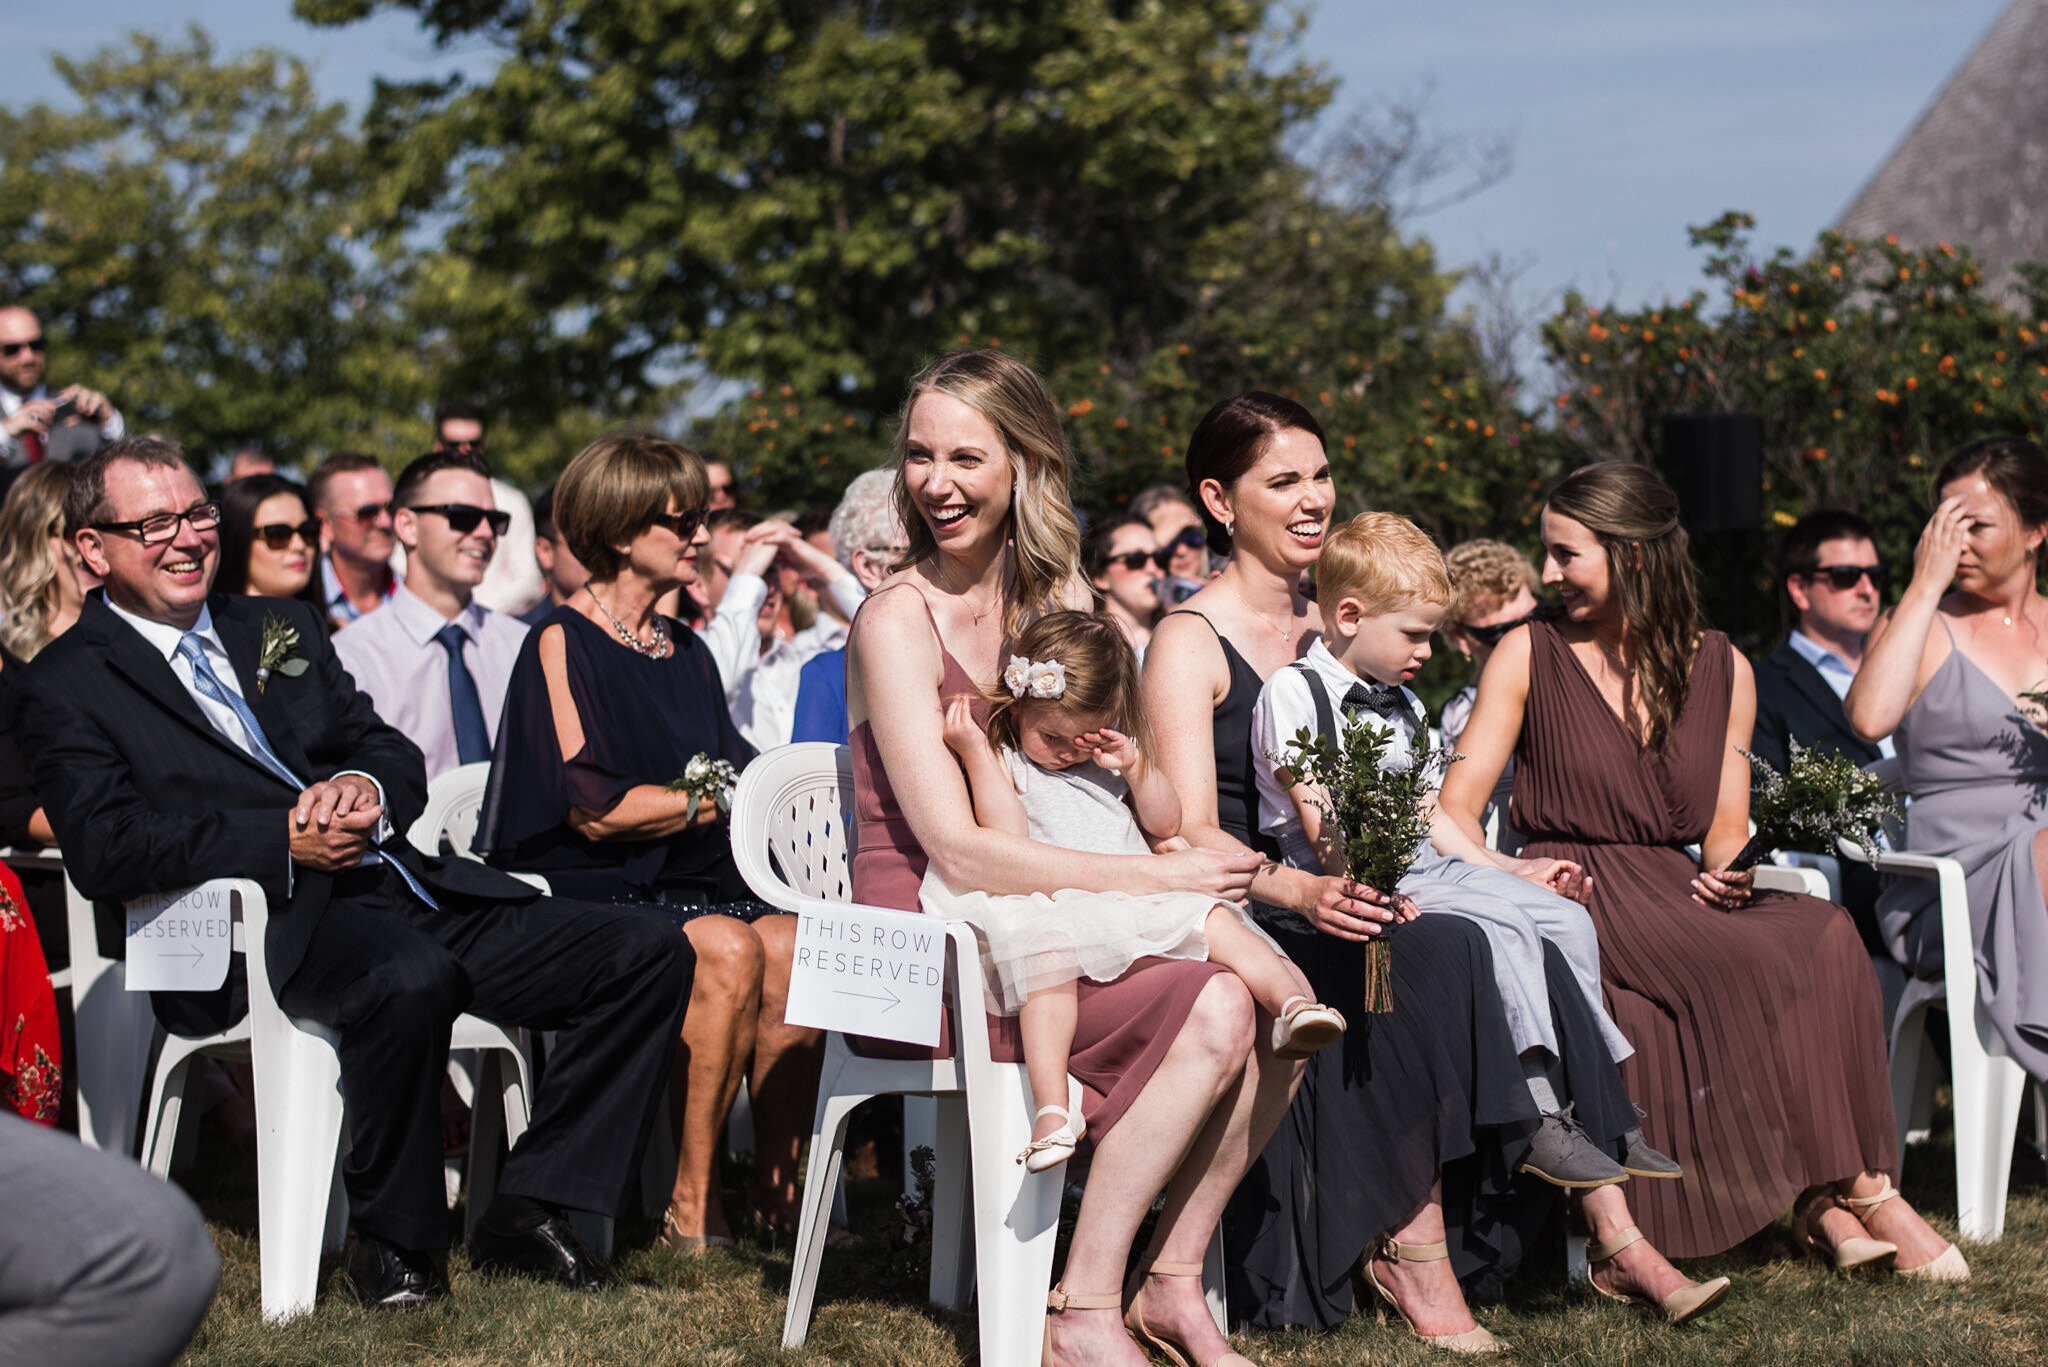 207-wedding-ceremony-by-the-ocean-destination-wedding-st--andrews-new-brunswick-photography.jpg